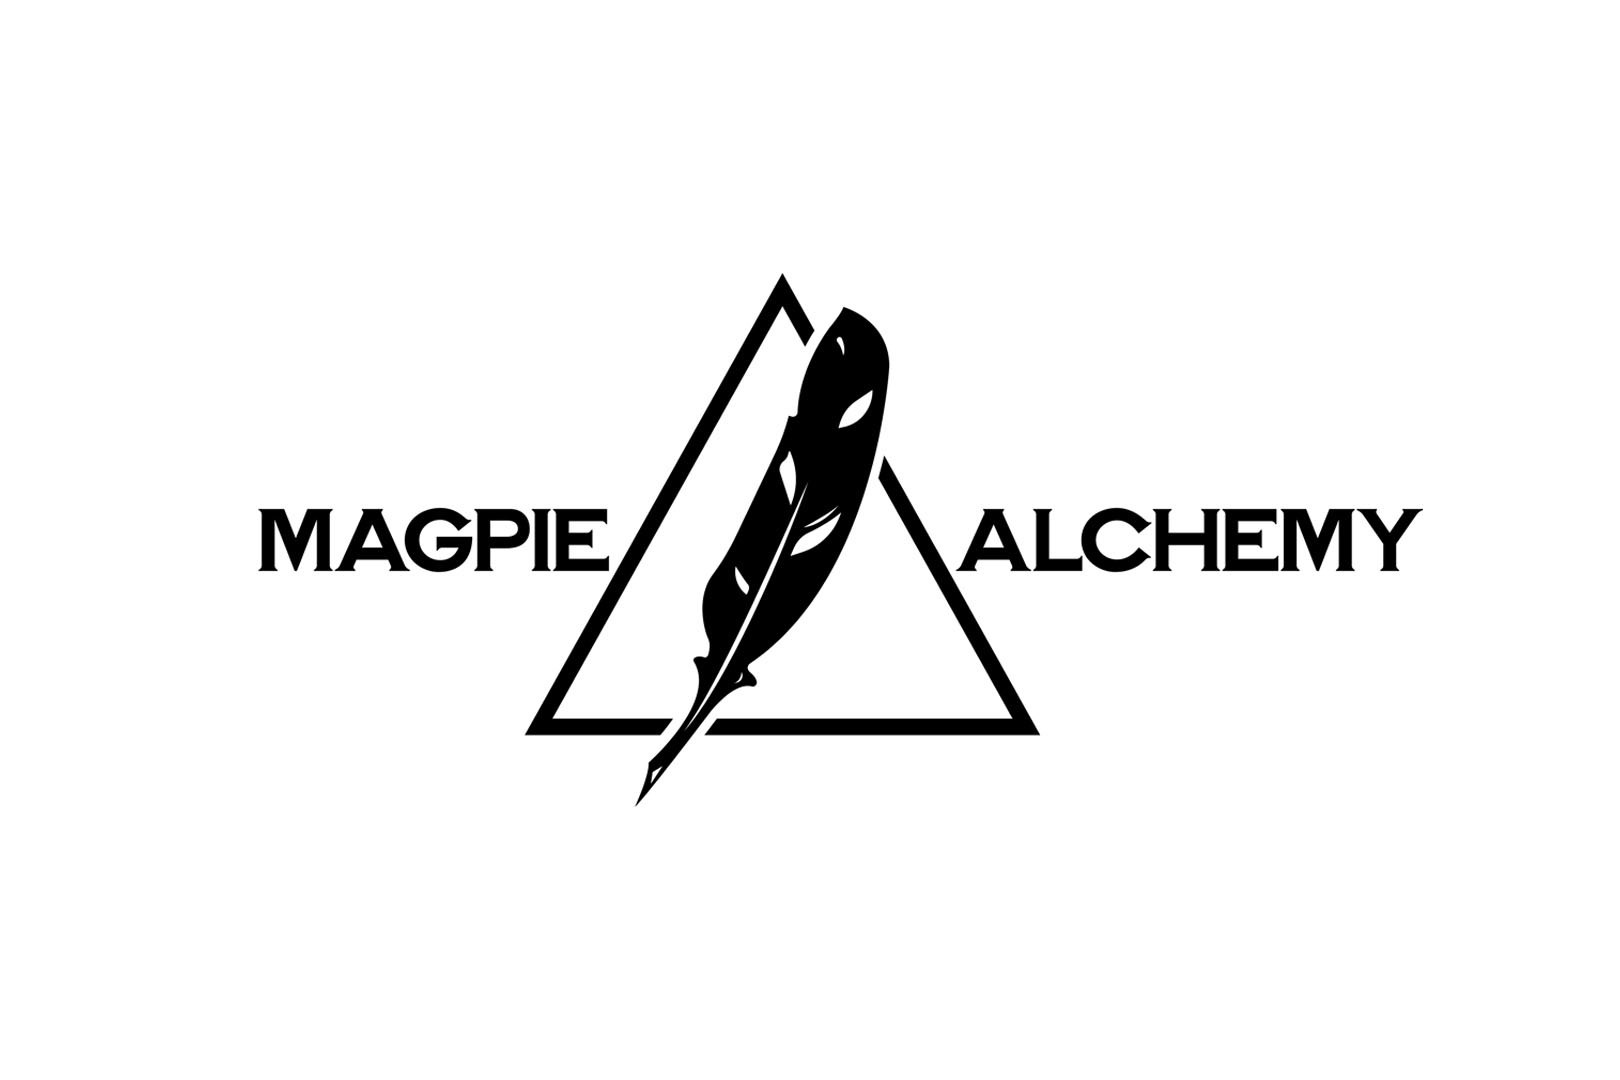 Magpie_Alchemy_logo_mock_0003_Layer 4